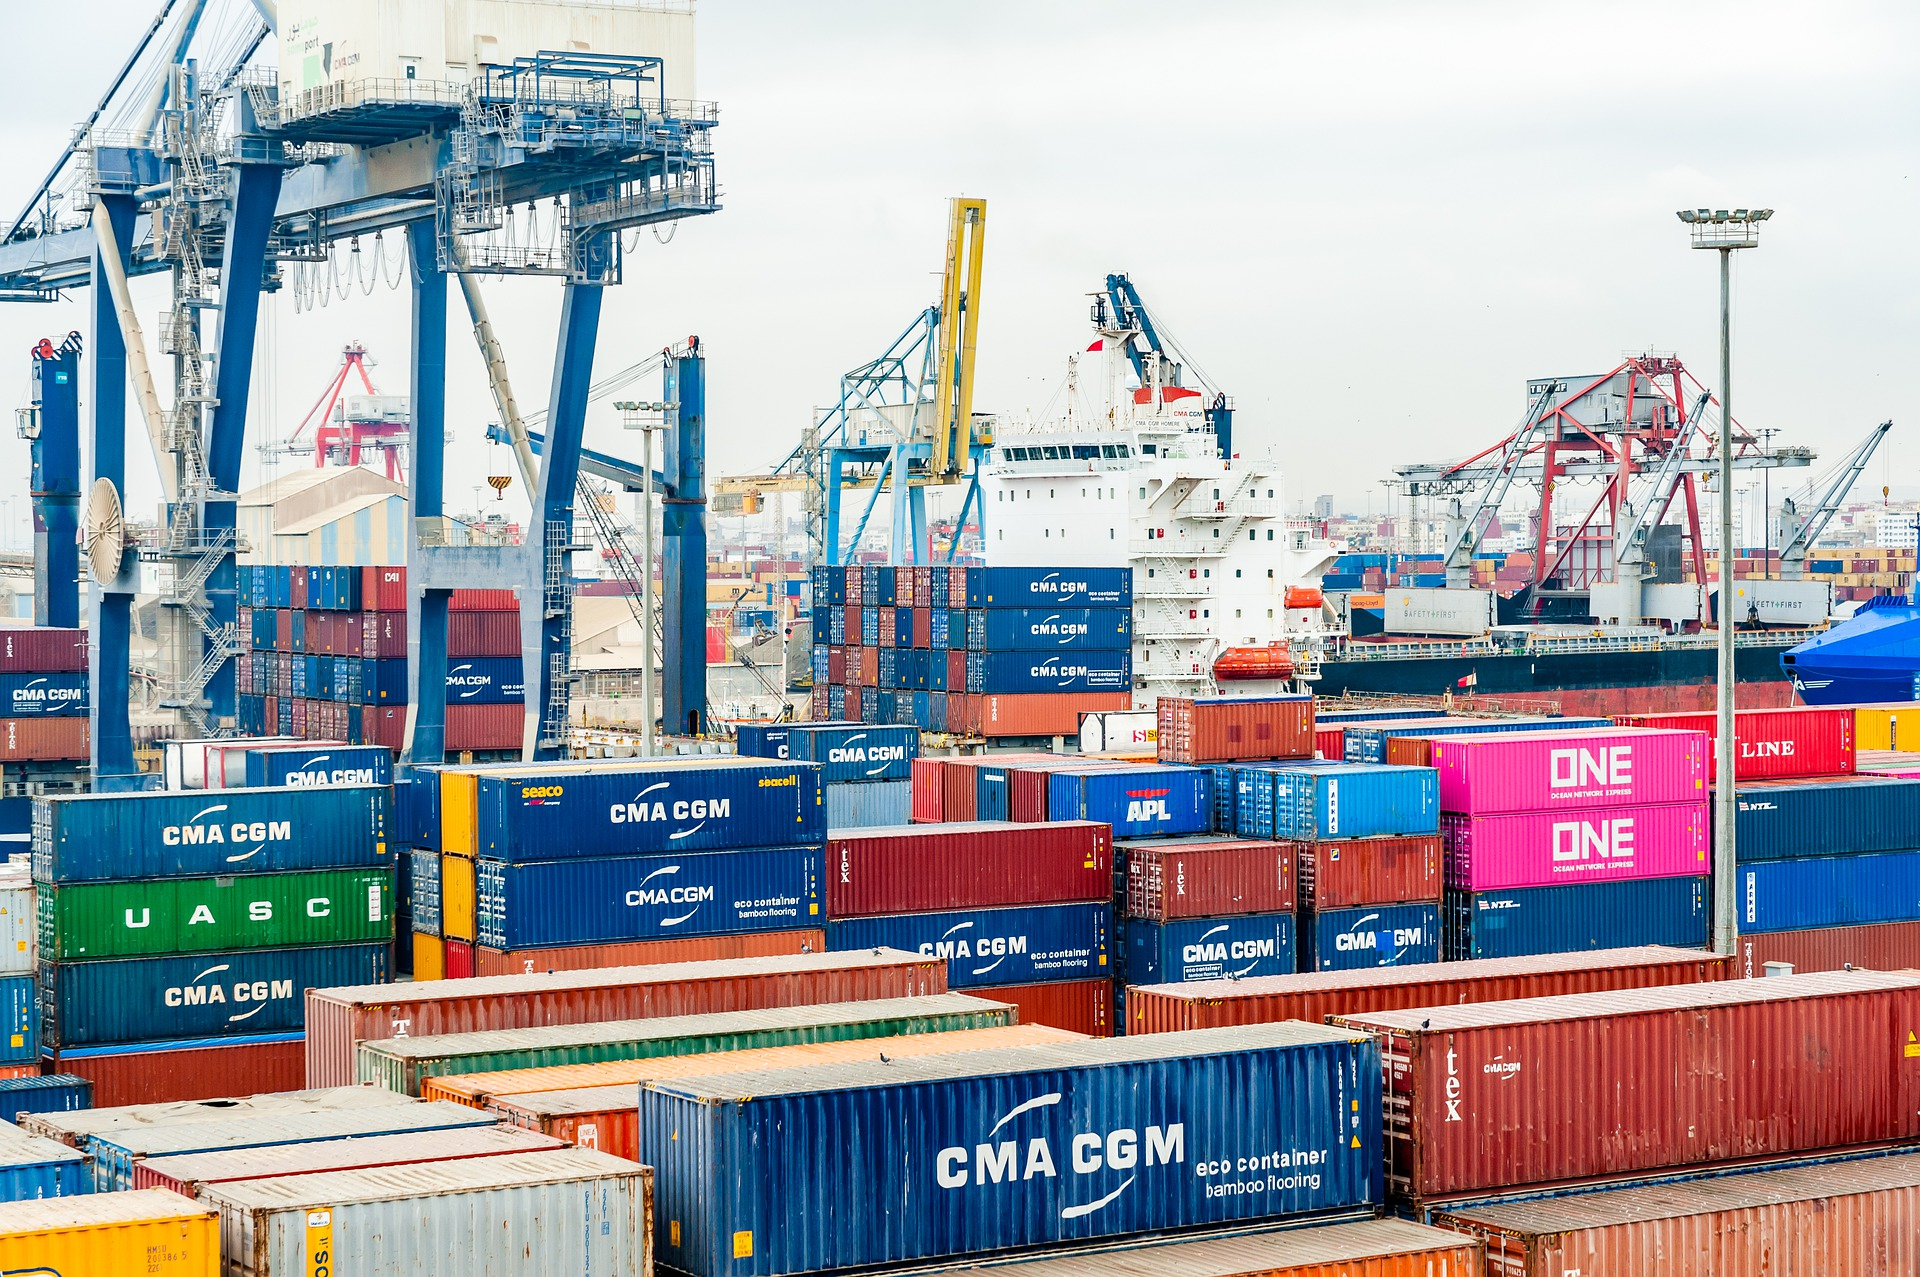 No one wants to be accused of taking advantage of a bad situation, but in the world of ocean freight, carriers are walking a fine line between cost and availability amid the current import boom. Also in the news this week, Amazon expands its stake in air, while shifting consumer habits continue to change the makeup of the logistics warehouse space.